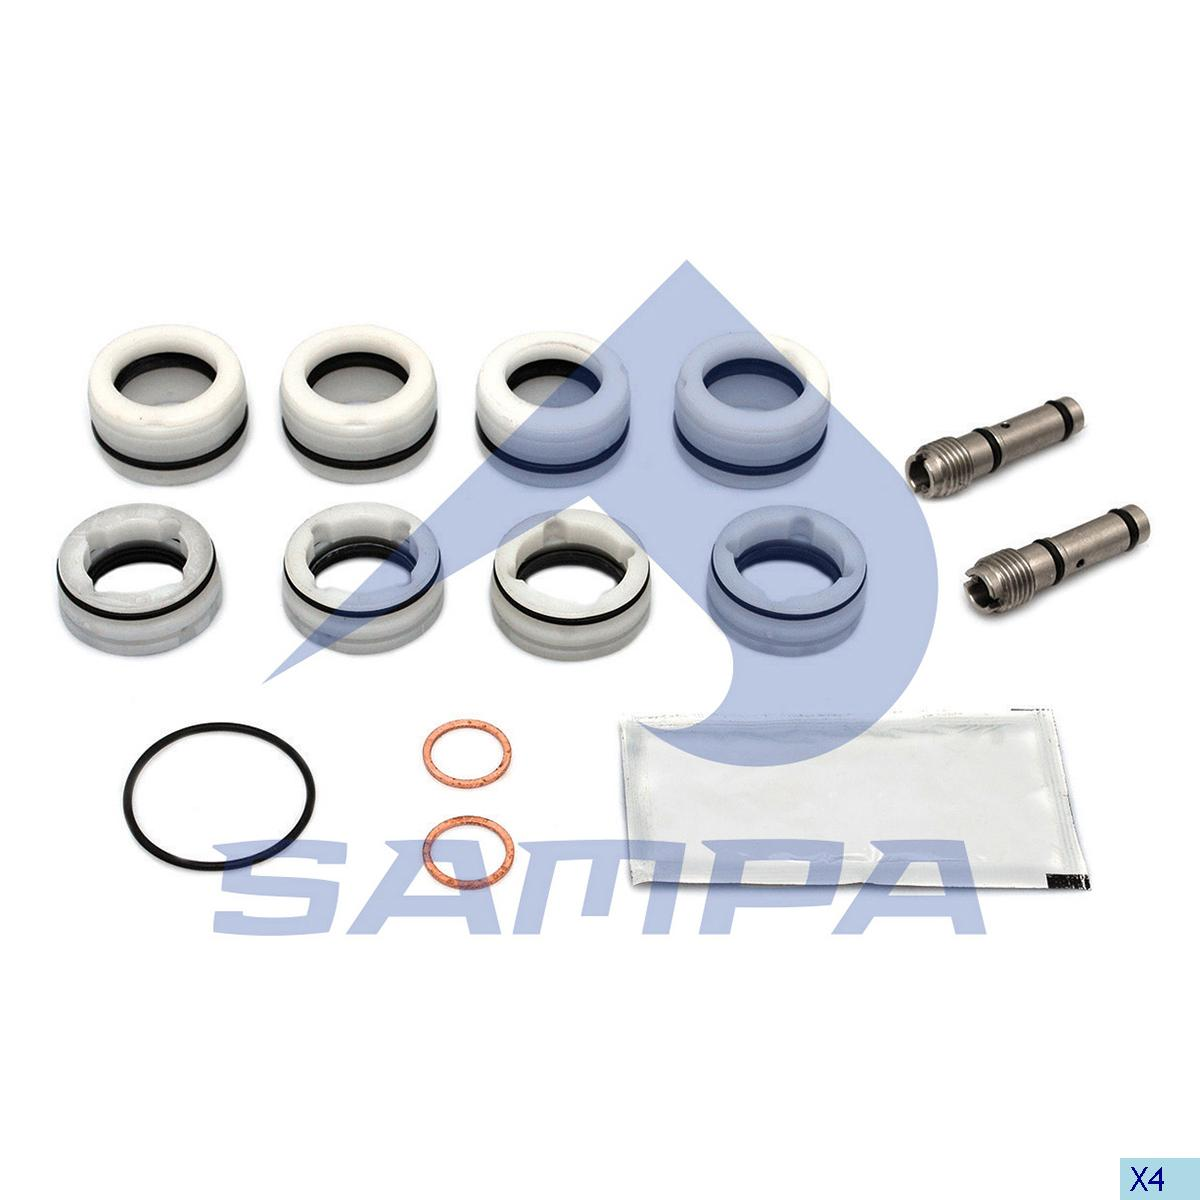 Repair Kit, Gear Shift Control, Mercedes, Gear Box